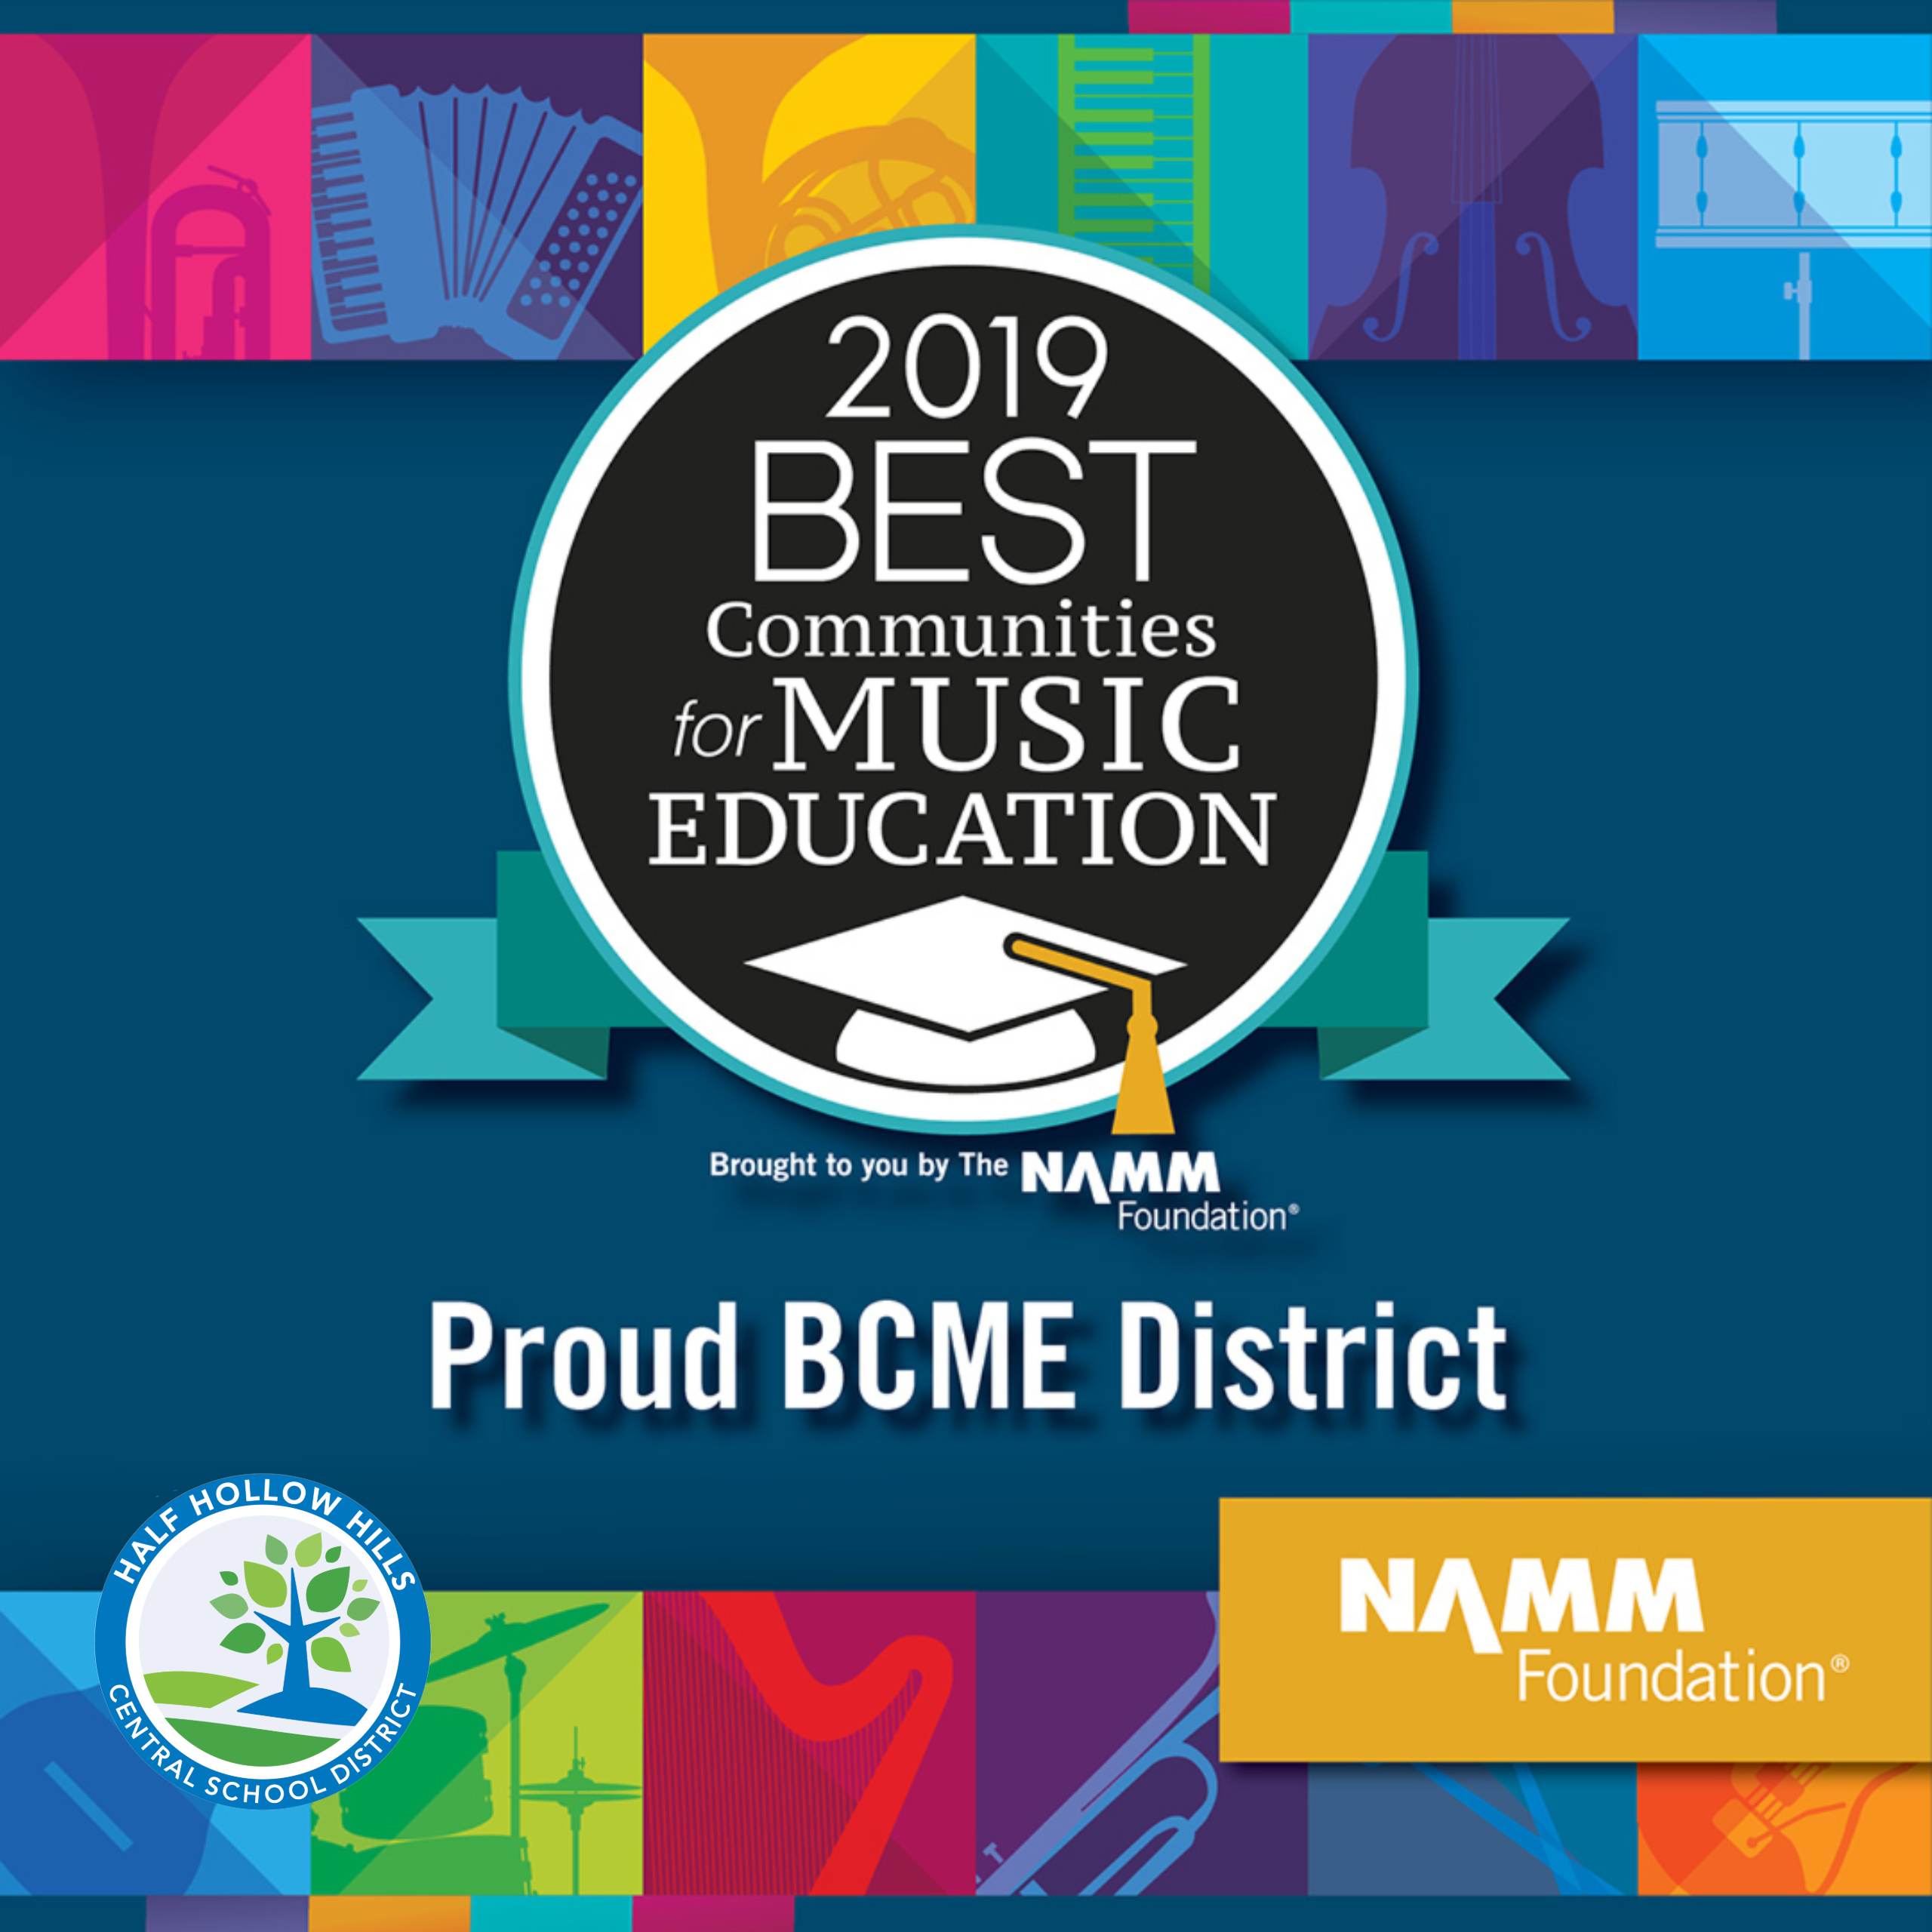 Half Hollow Hills' Music Education Program Receives National Recognition